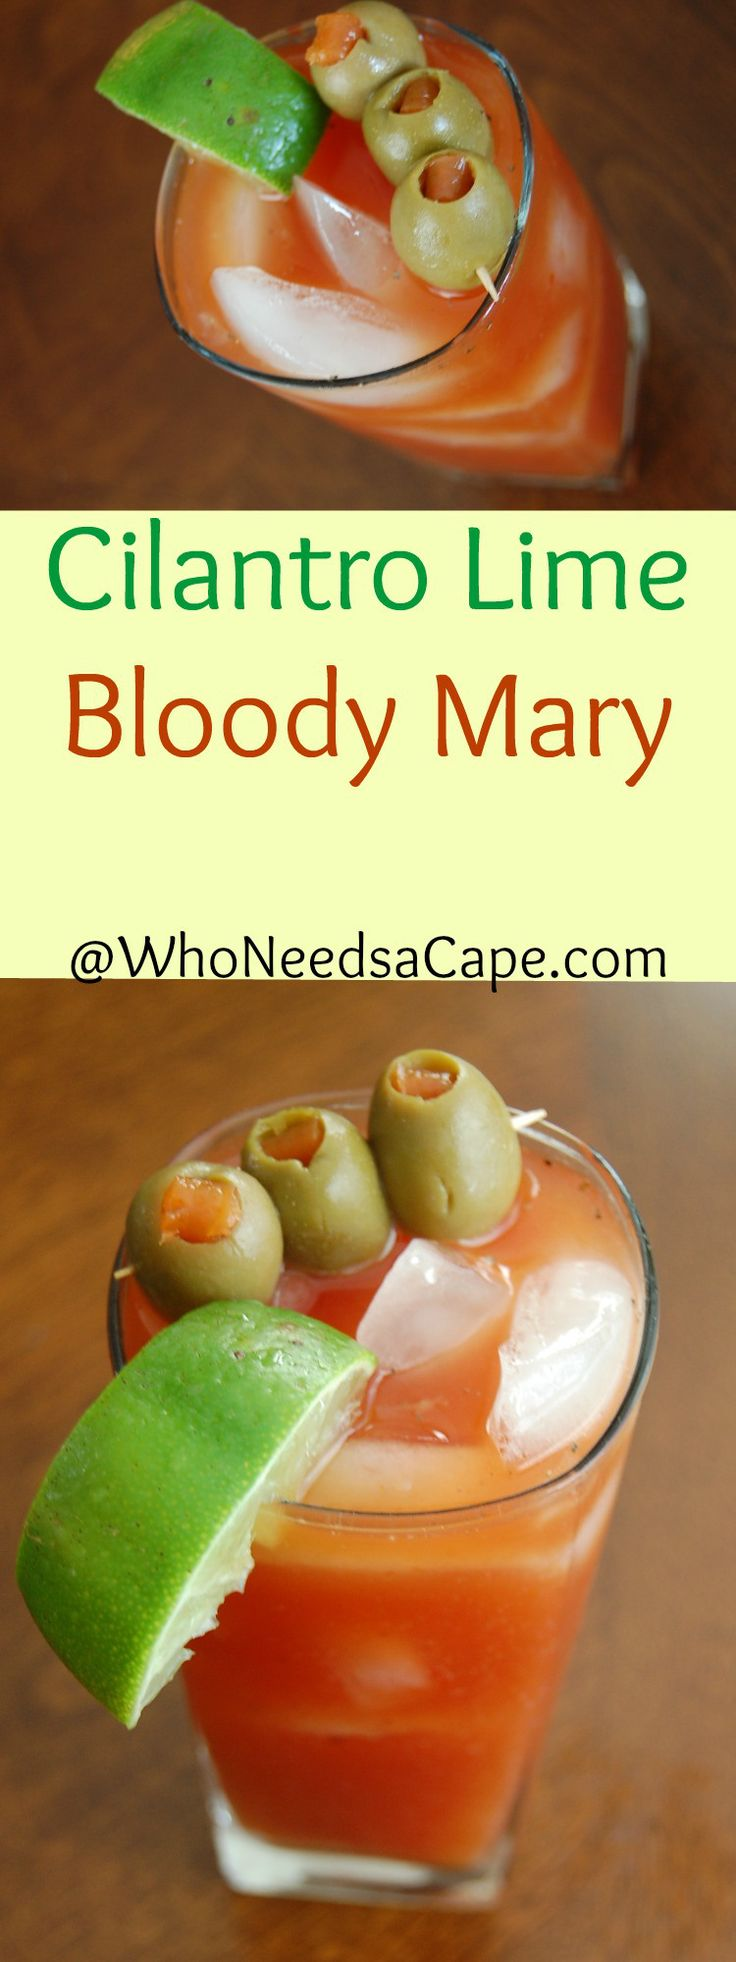 Cilantro Lime Bloody Mary Perfect for the summer Bloody Mary!